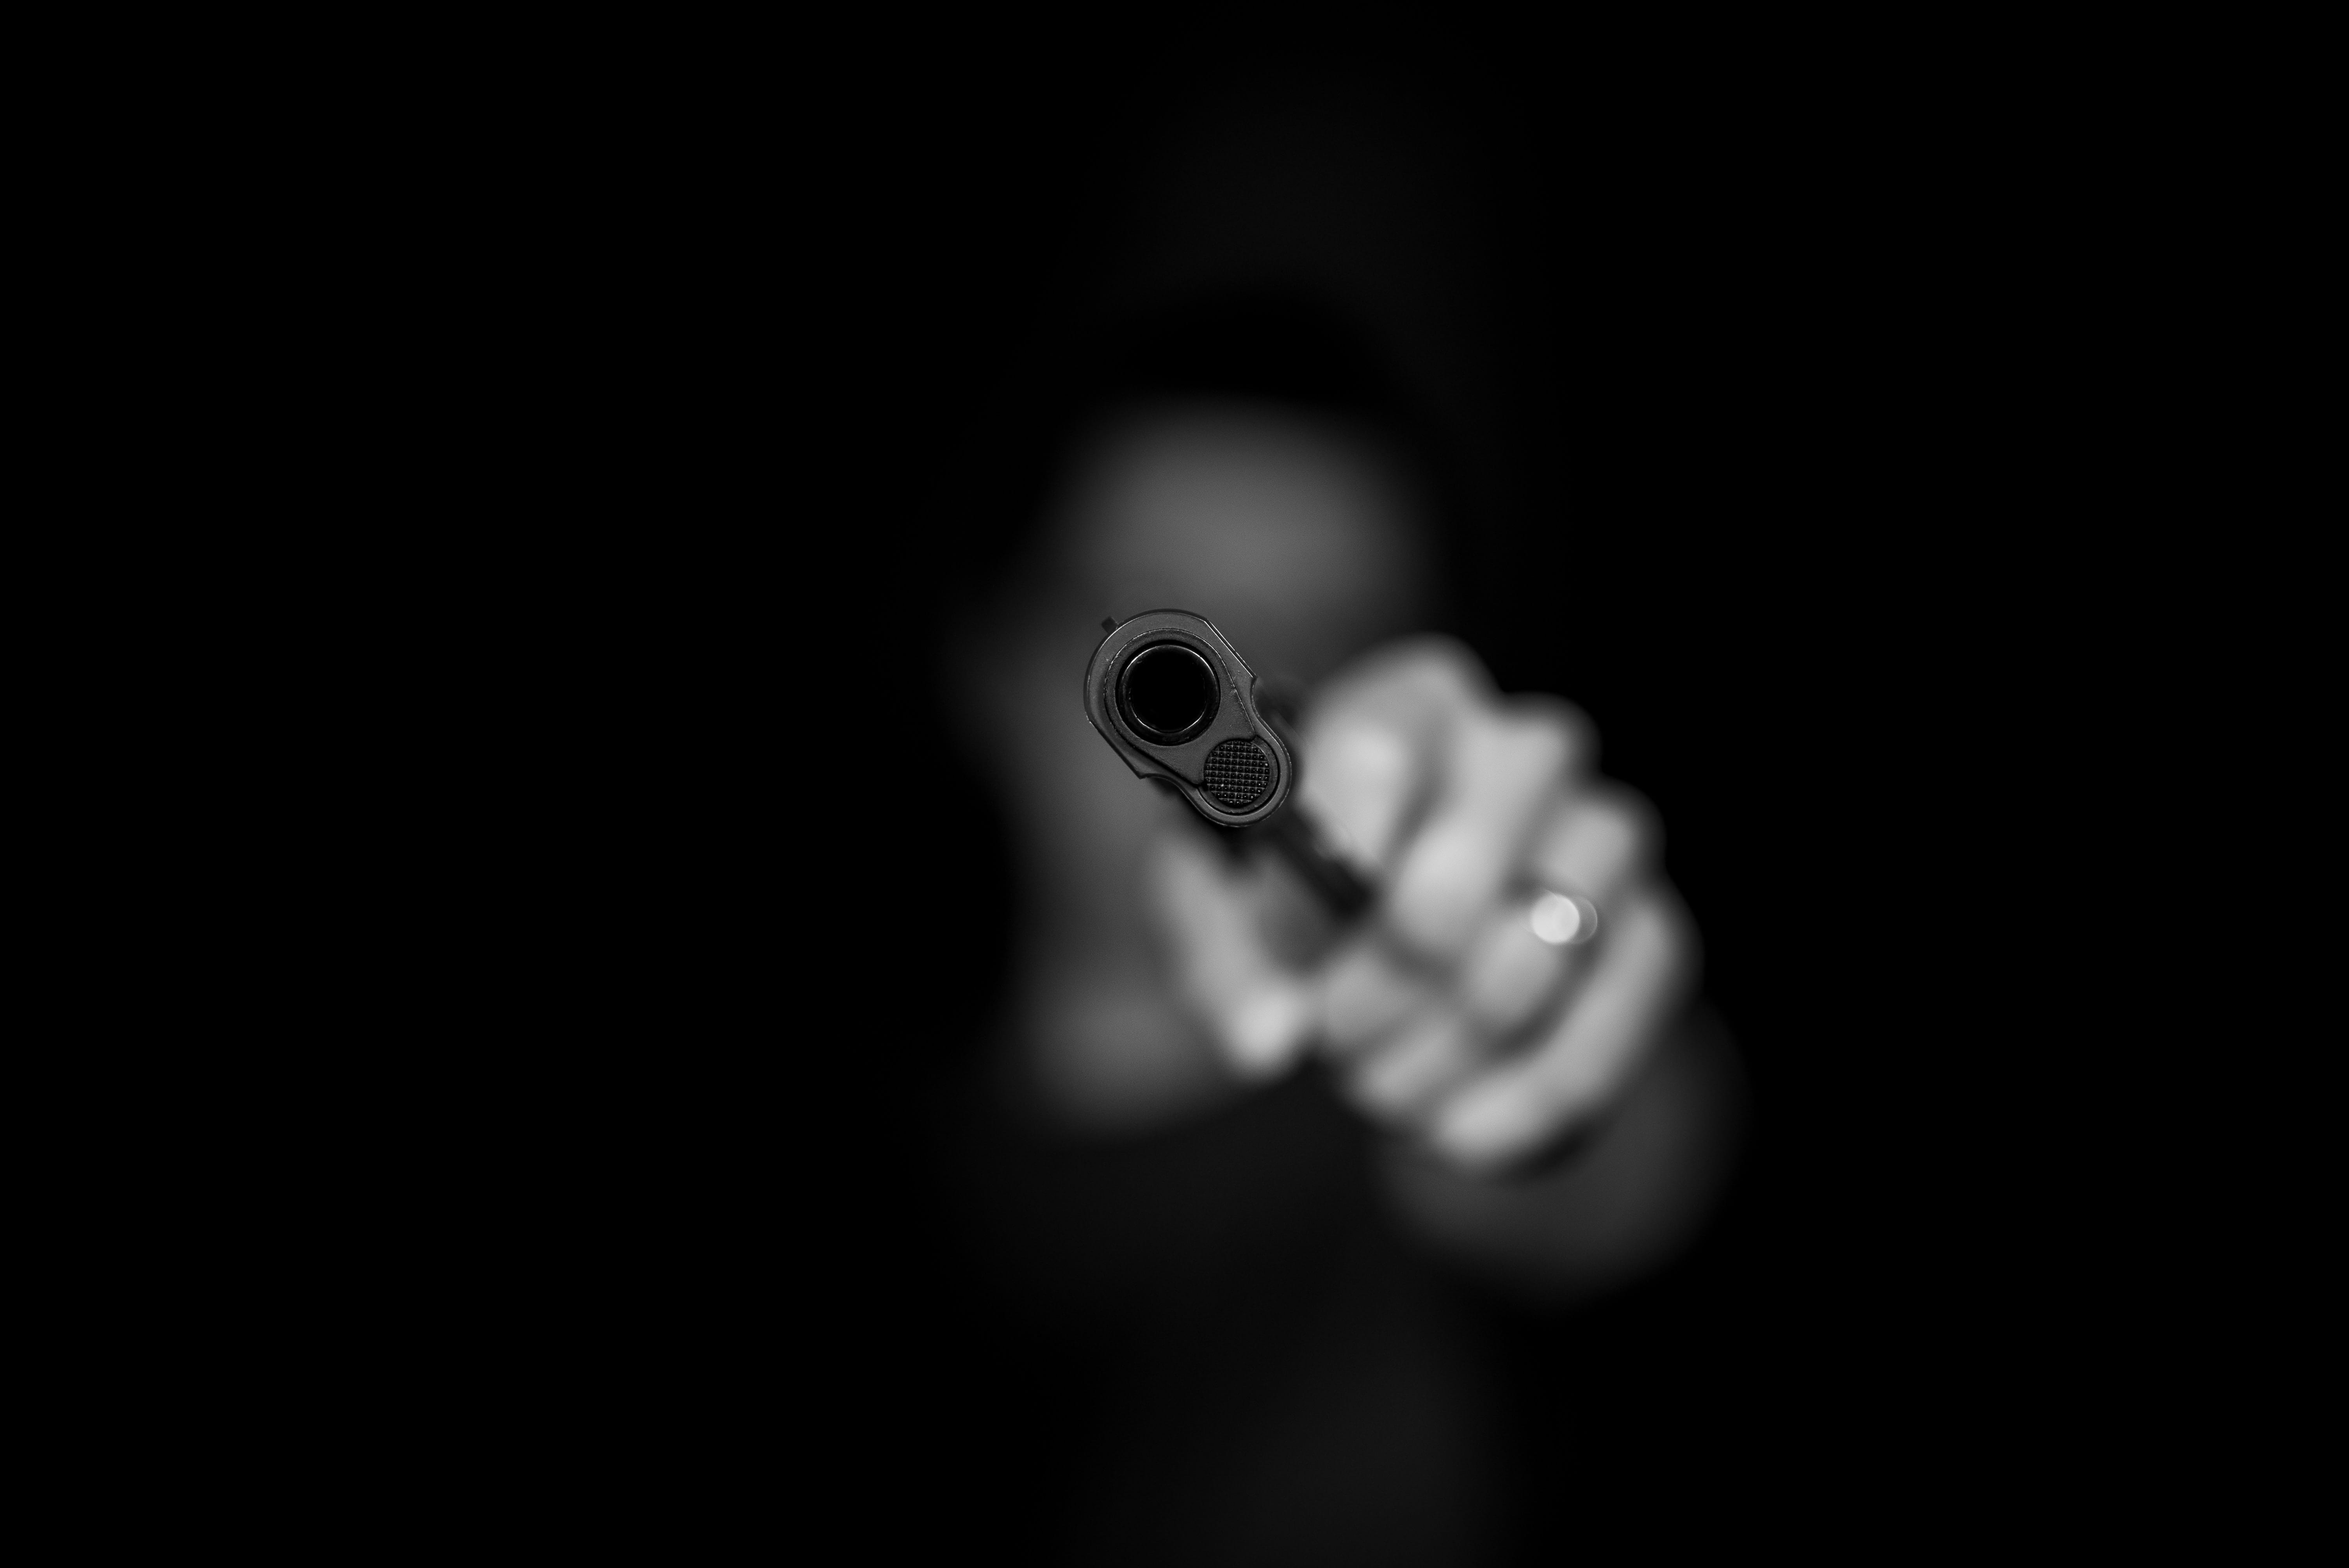 Greyscale image of person pointing a gun at viewer; image by Max Kleinen, via Unsplash.com.